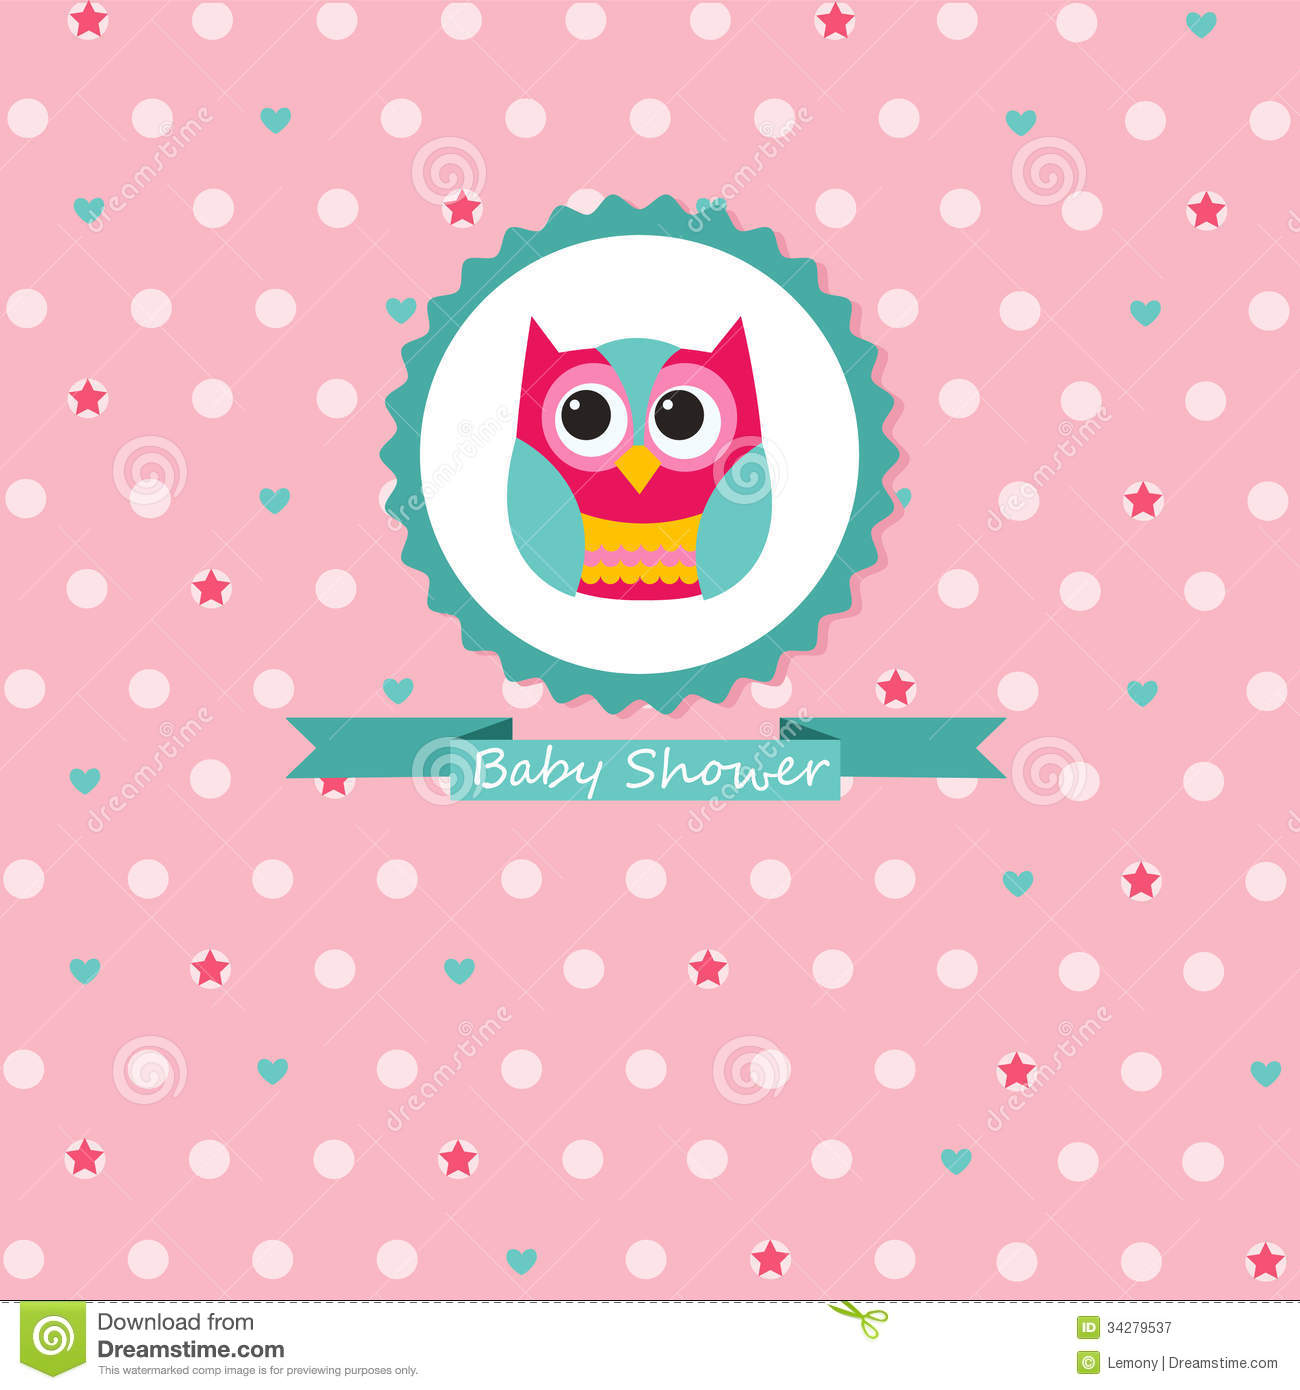 Owl Baby Girl Shower Invitations is nice invitations layout